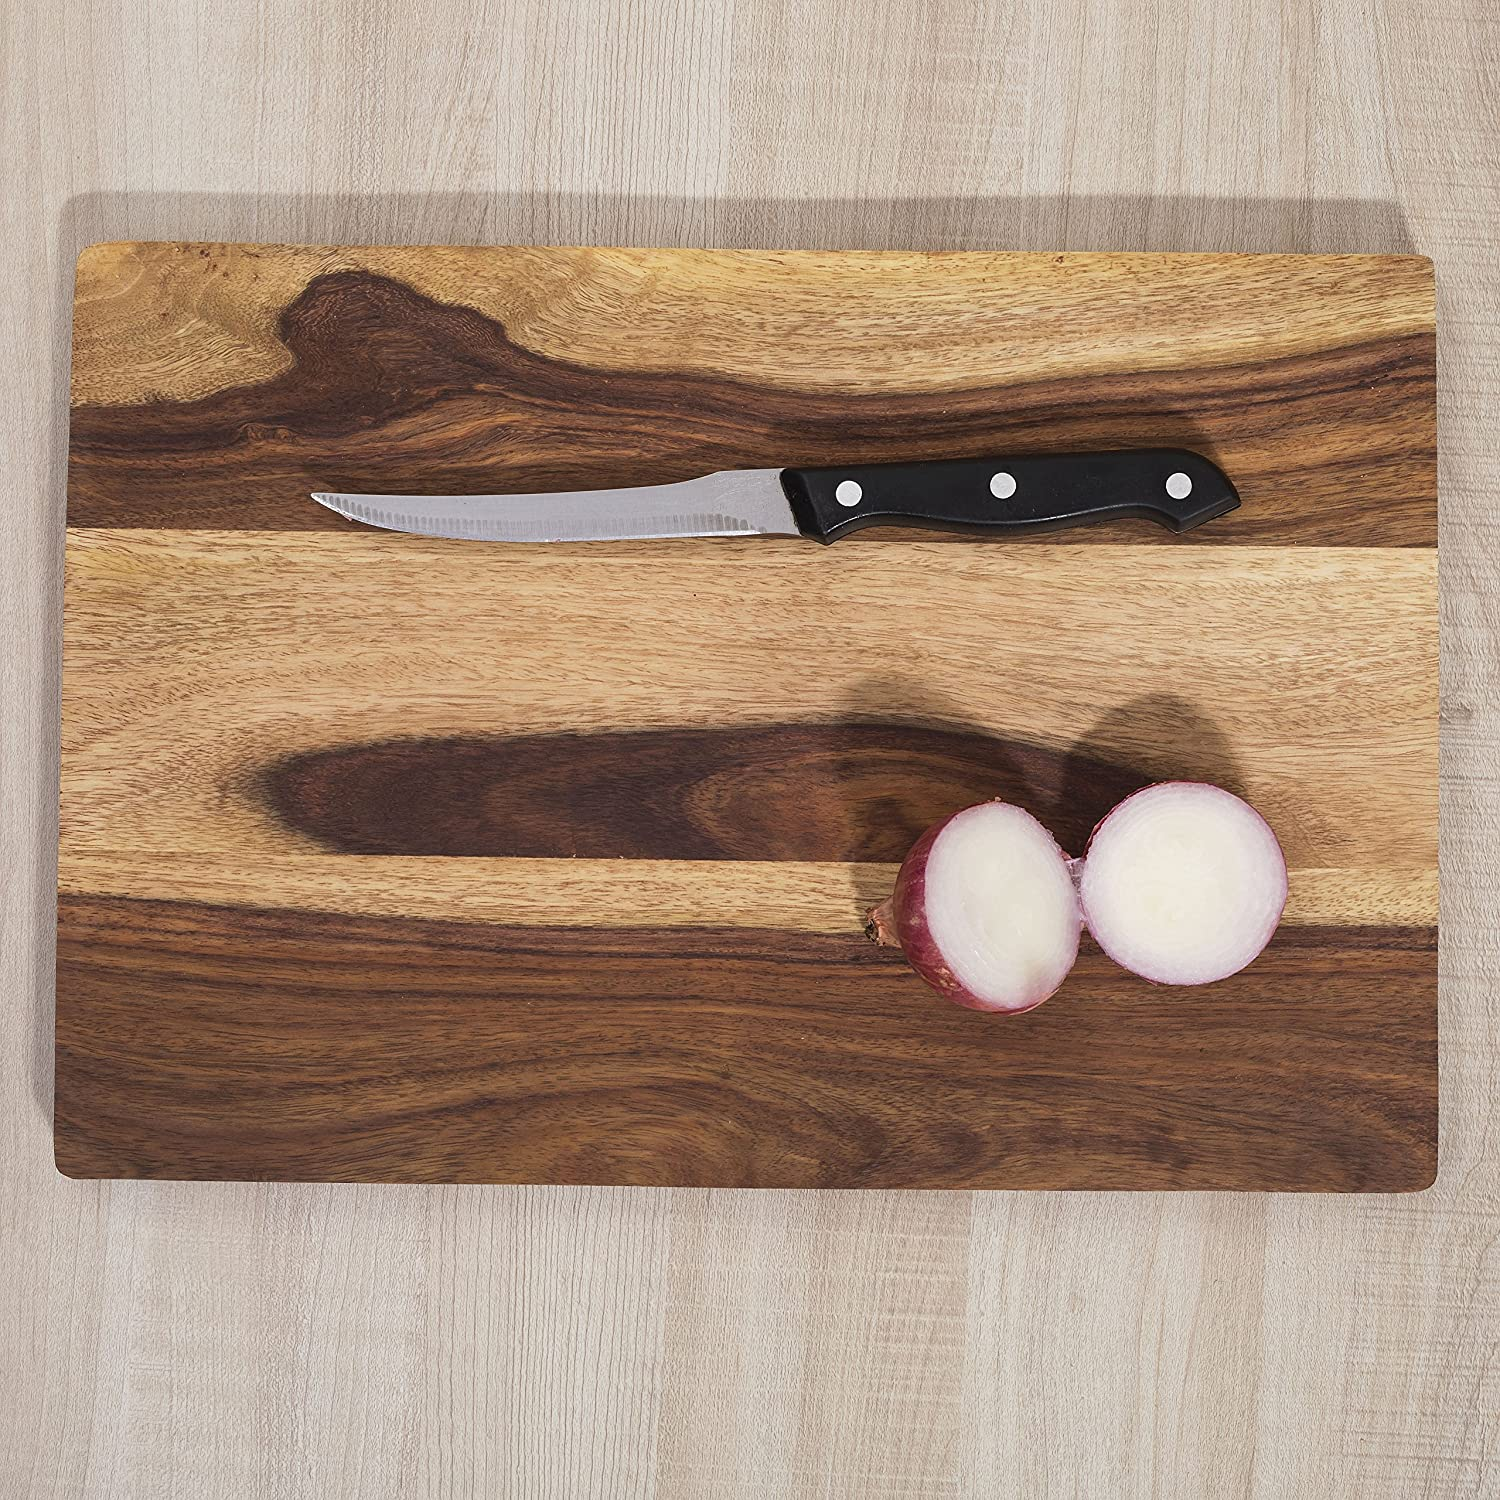 Rusticity Wood Chopping/Cutting Board for Food Prep, Meat, Vegetables, Bread etc.| Handmade |(14x9.5 in)